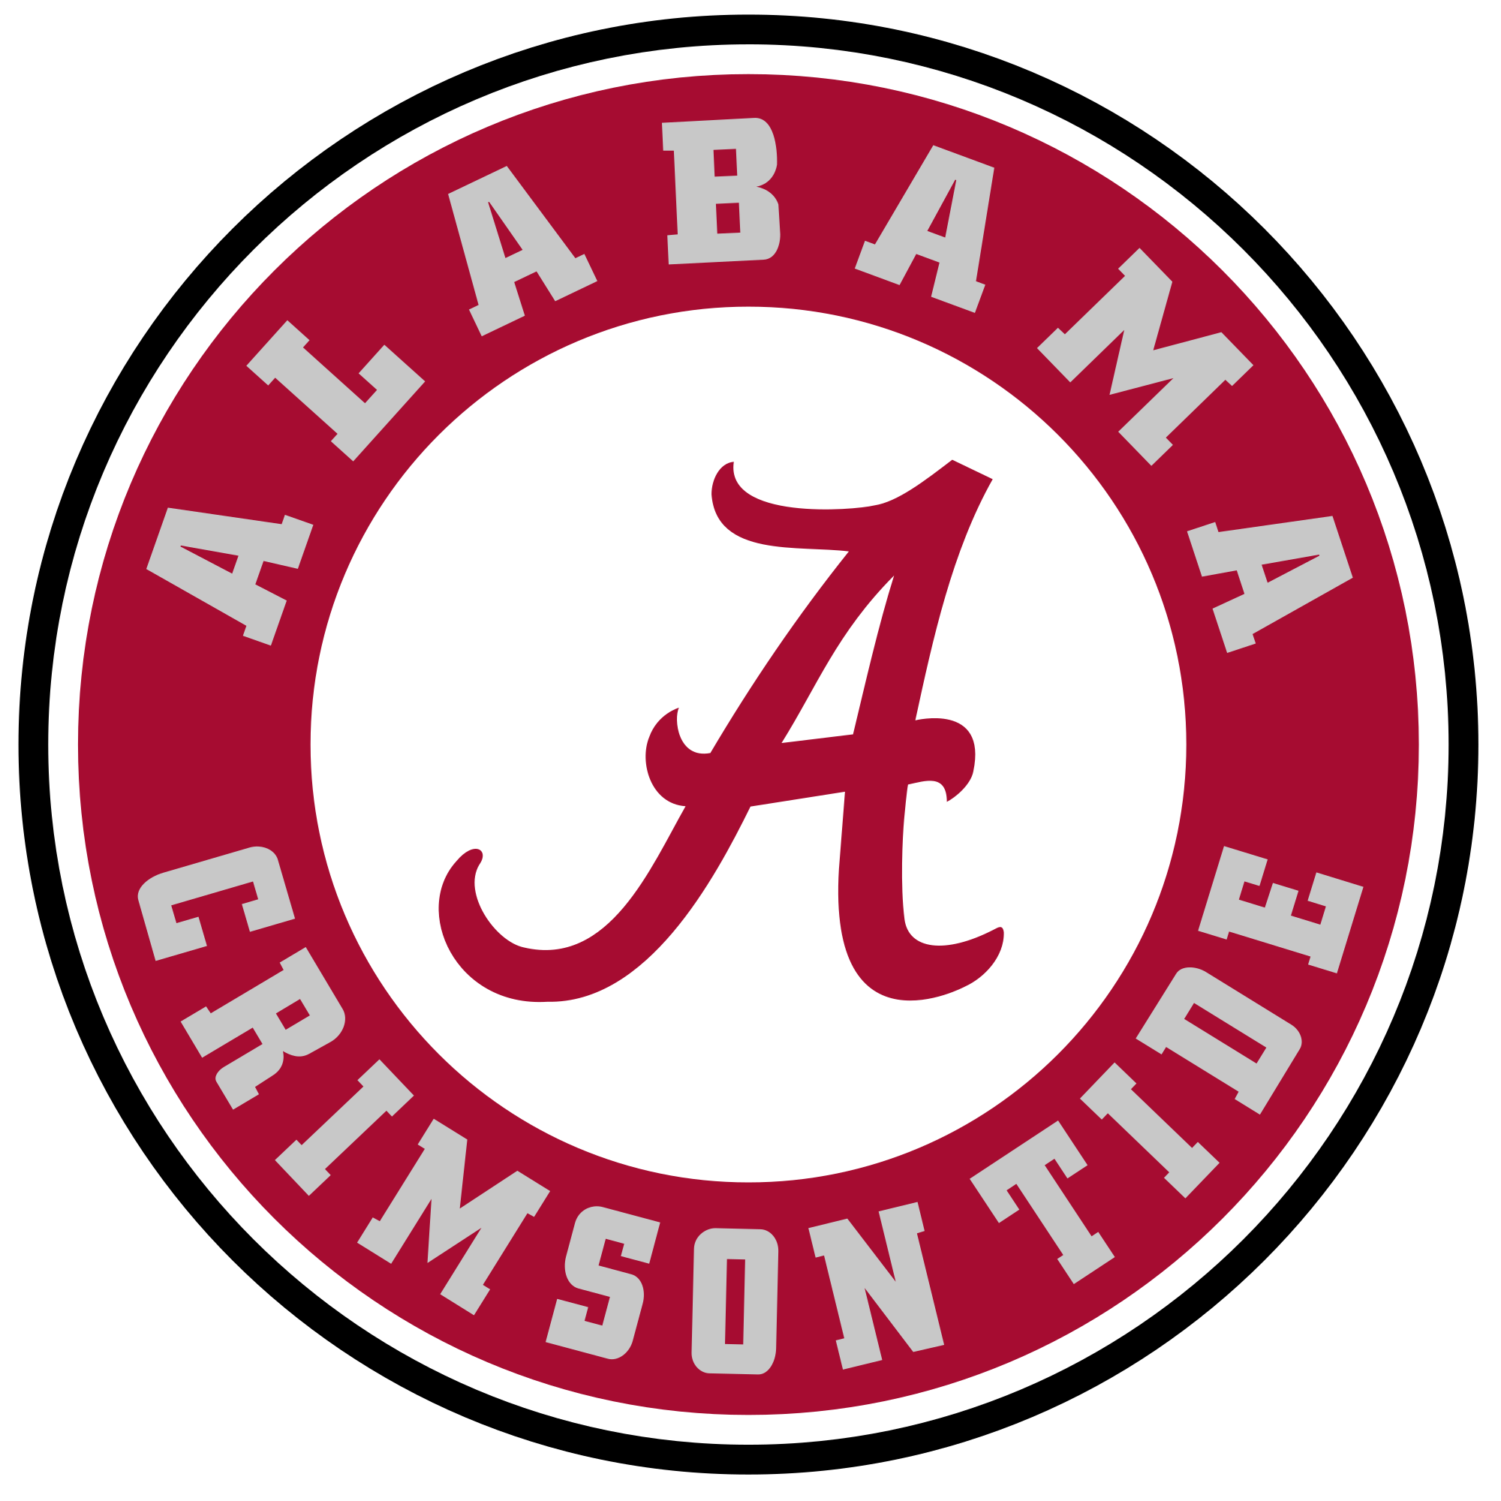 Alabama won the NCAA College Football championship January 8.